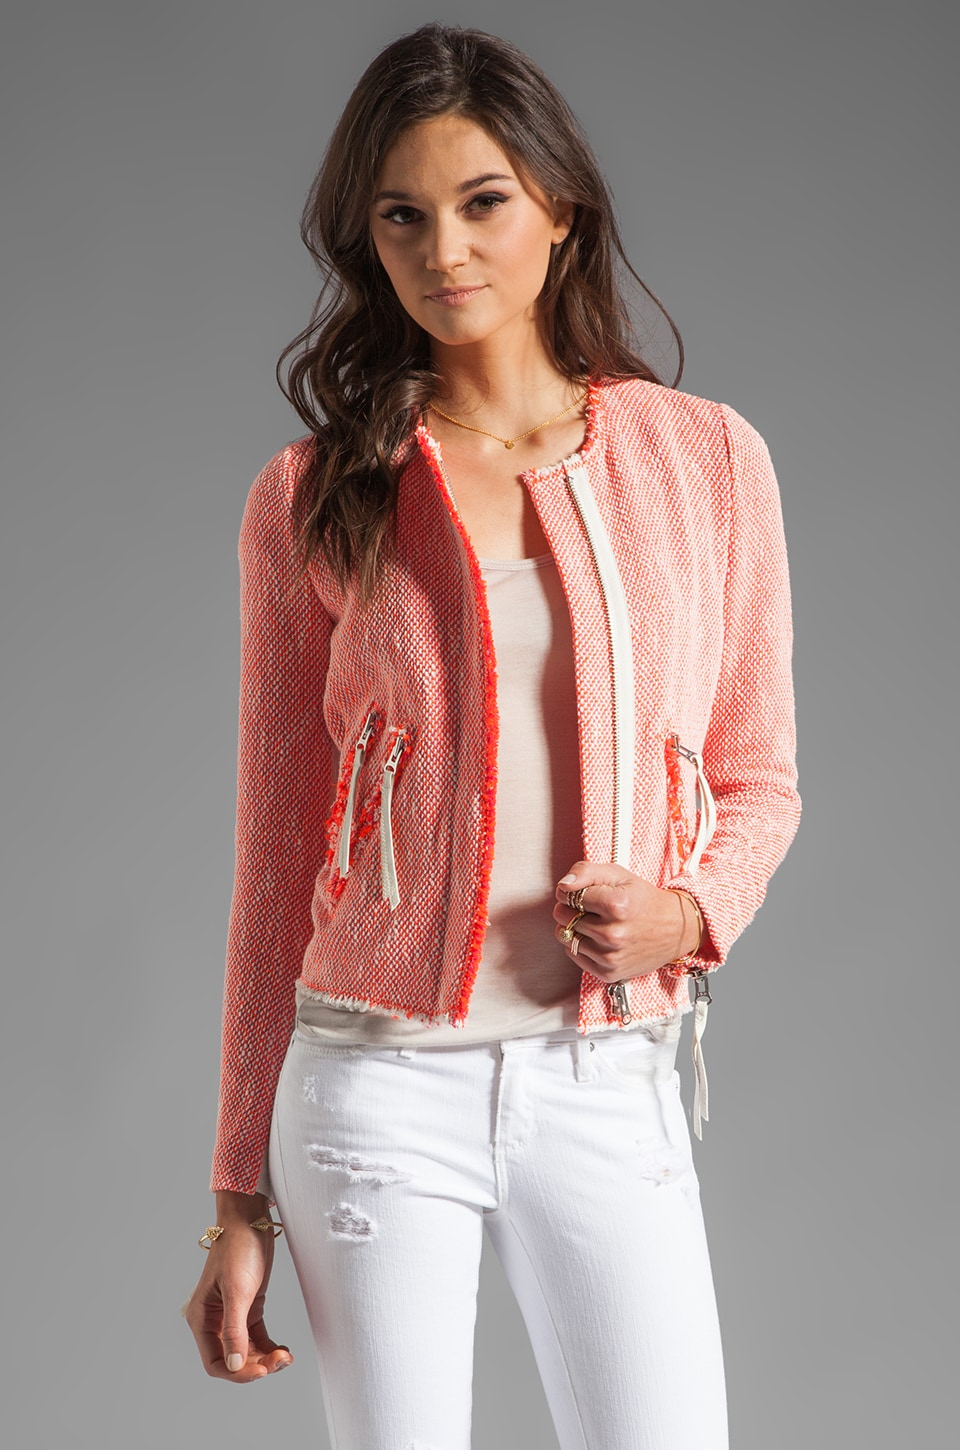 Rebecca Taylor Neon Tweed Jacket in Coral